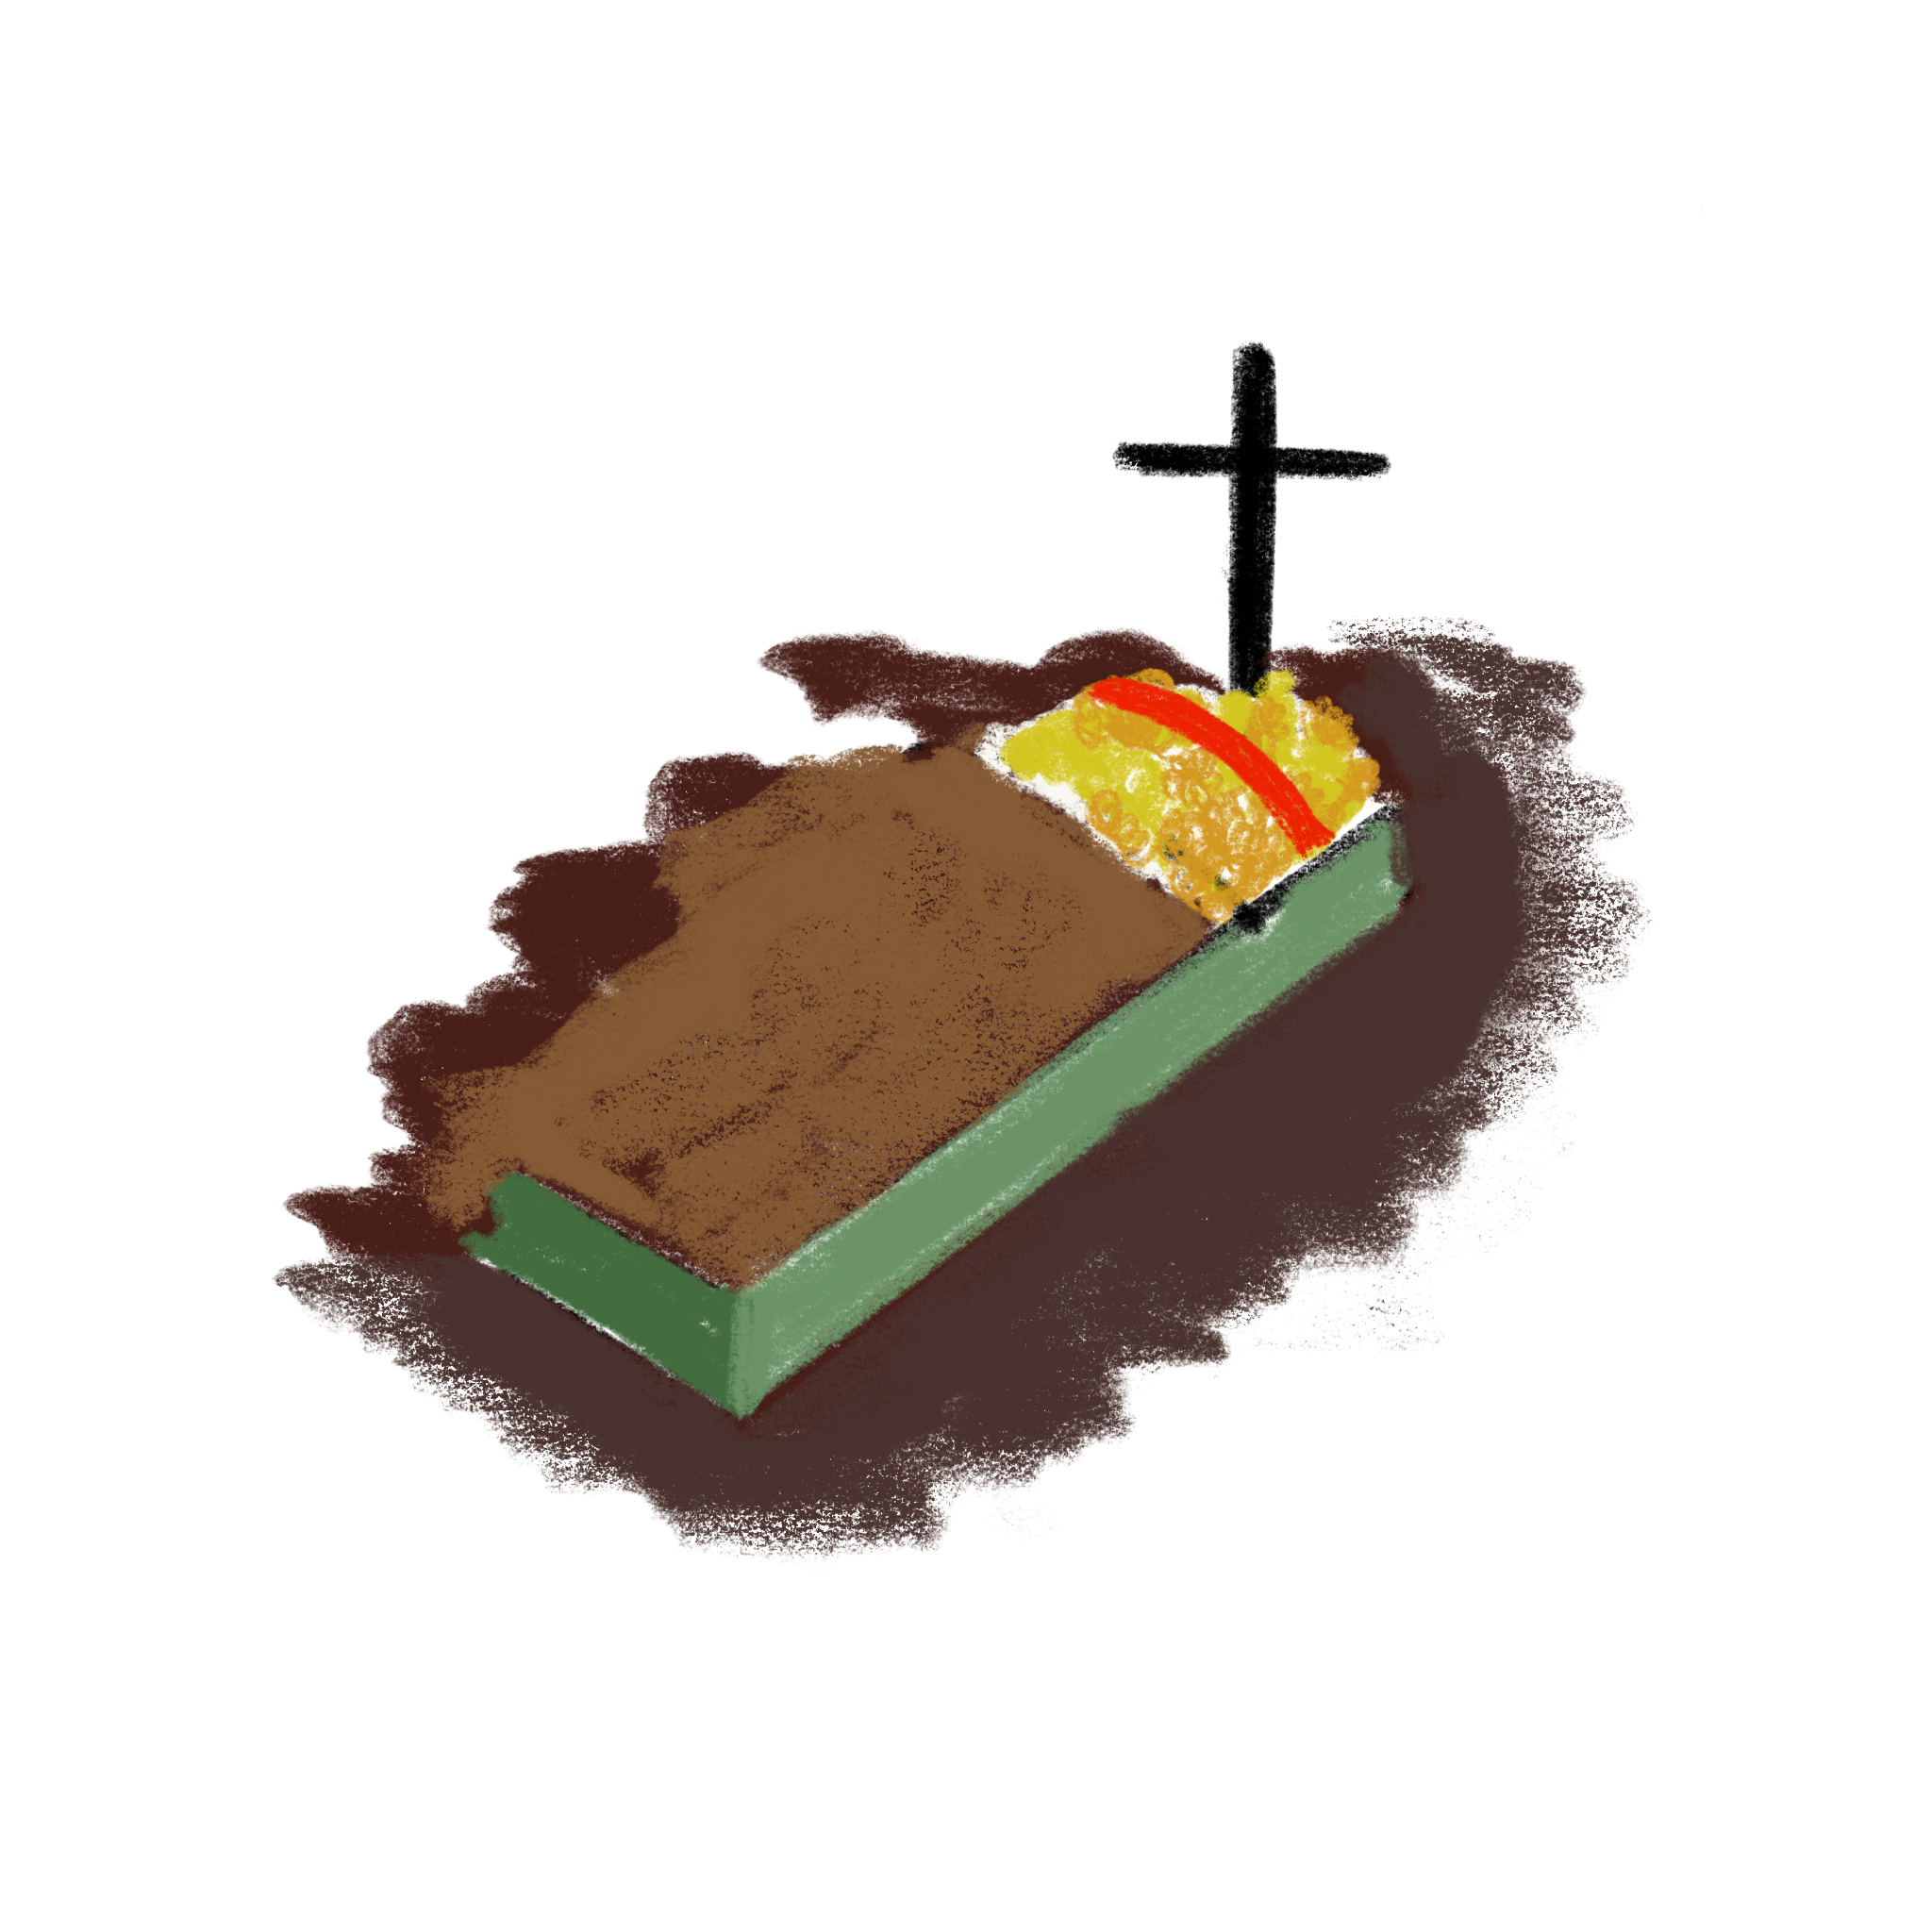 digital illustration of a shallow grave with a cross sitting above the coffin.